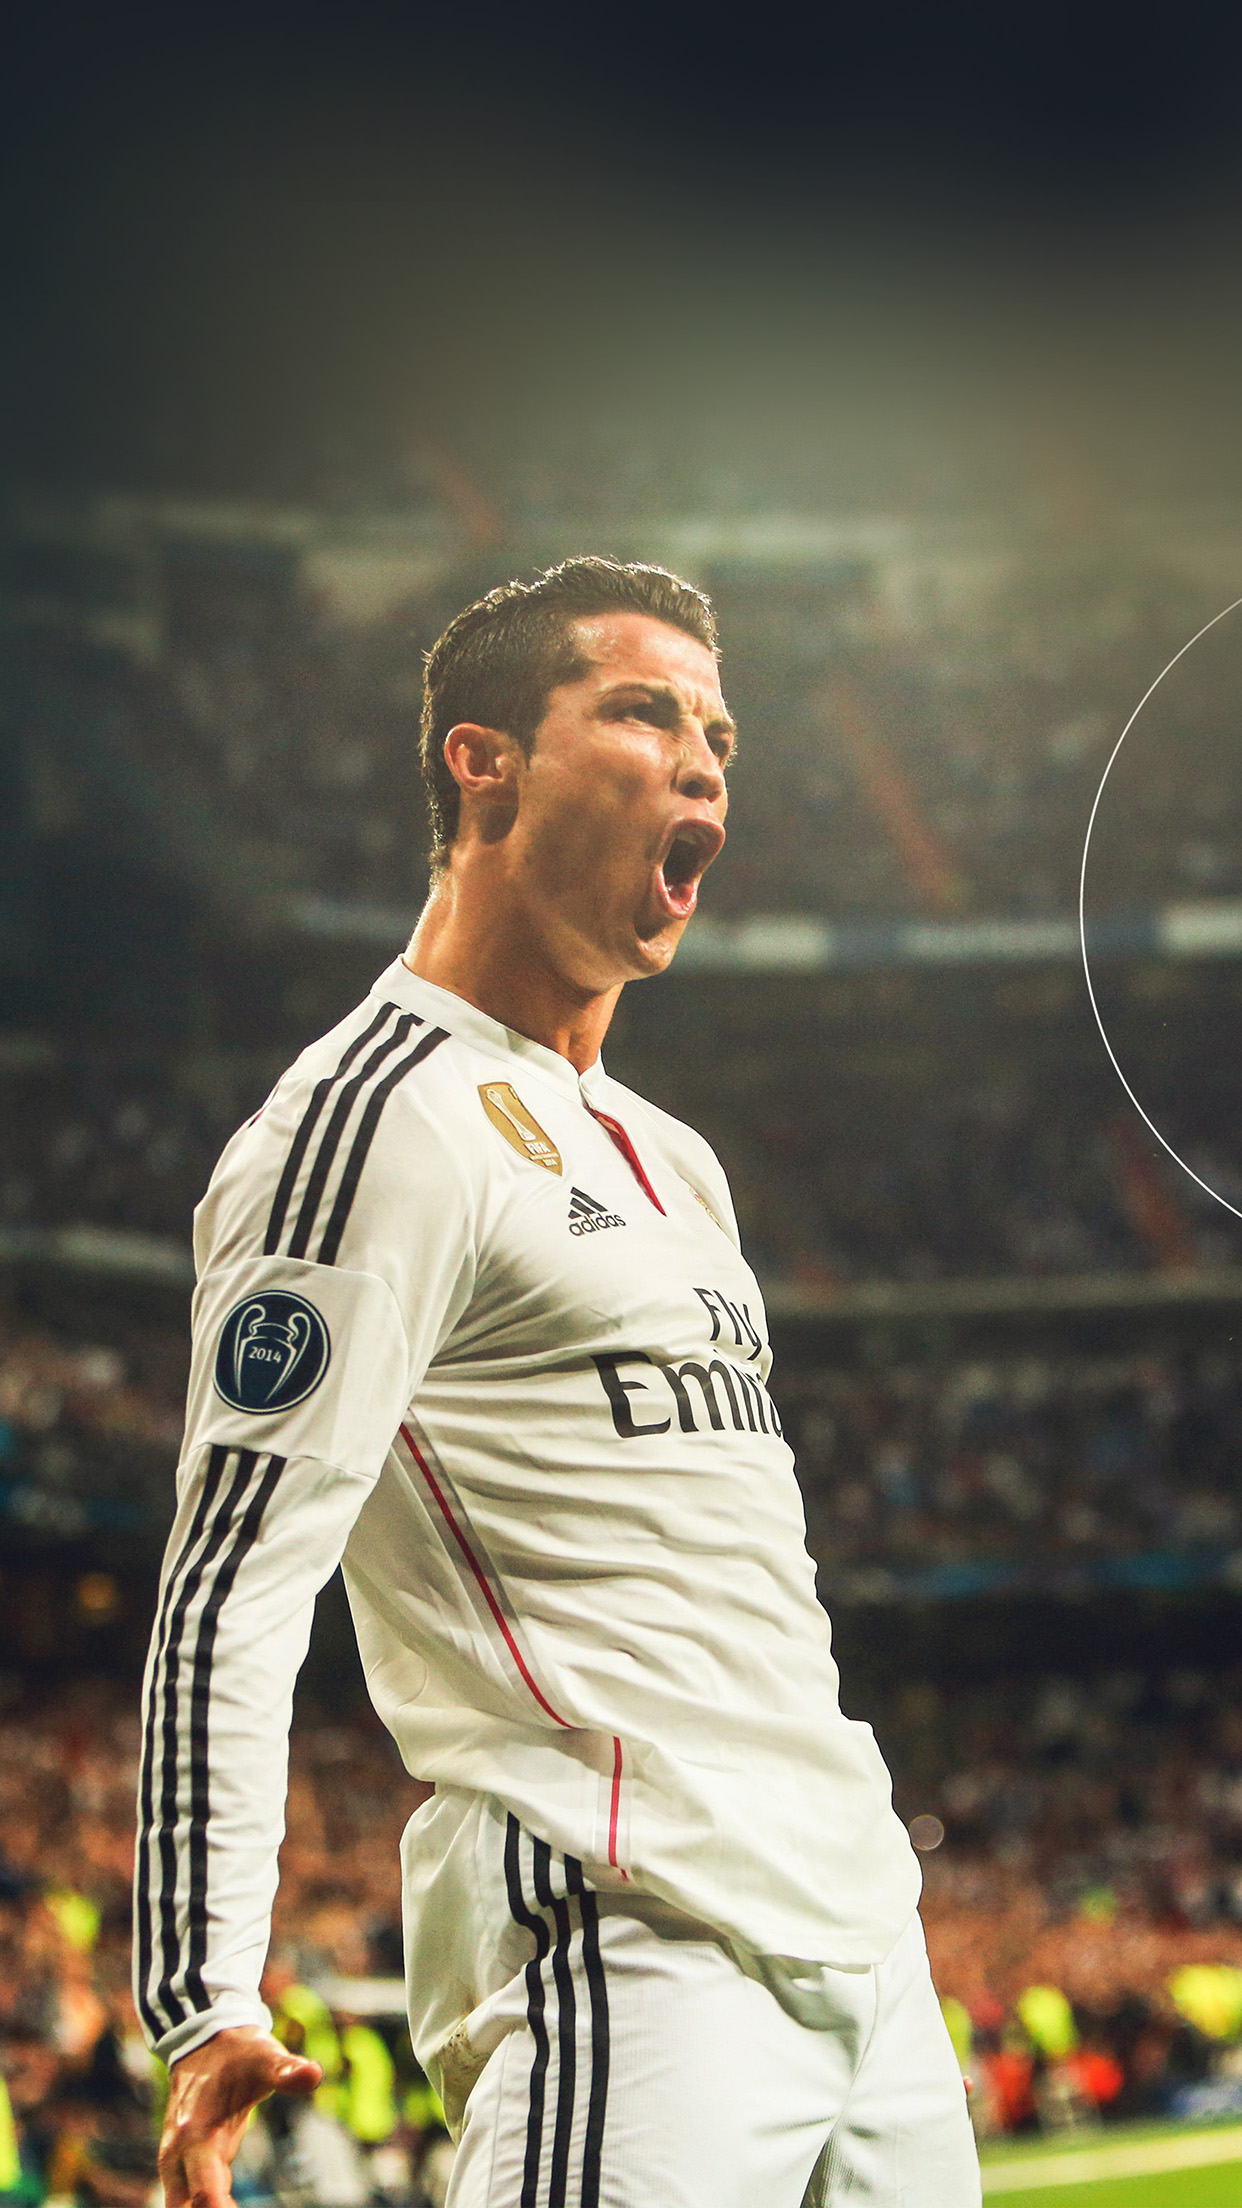 hm08-ronaldo-real-madrid-soccer-shout-roar-sports-wallpaper